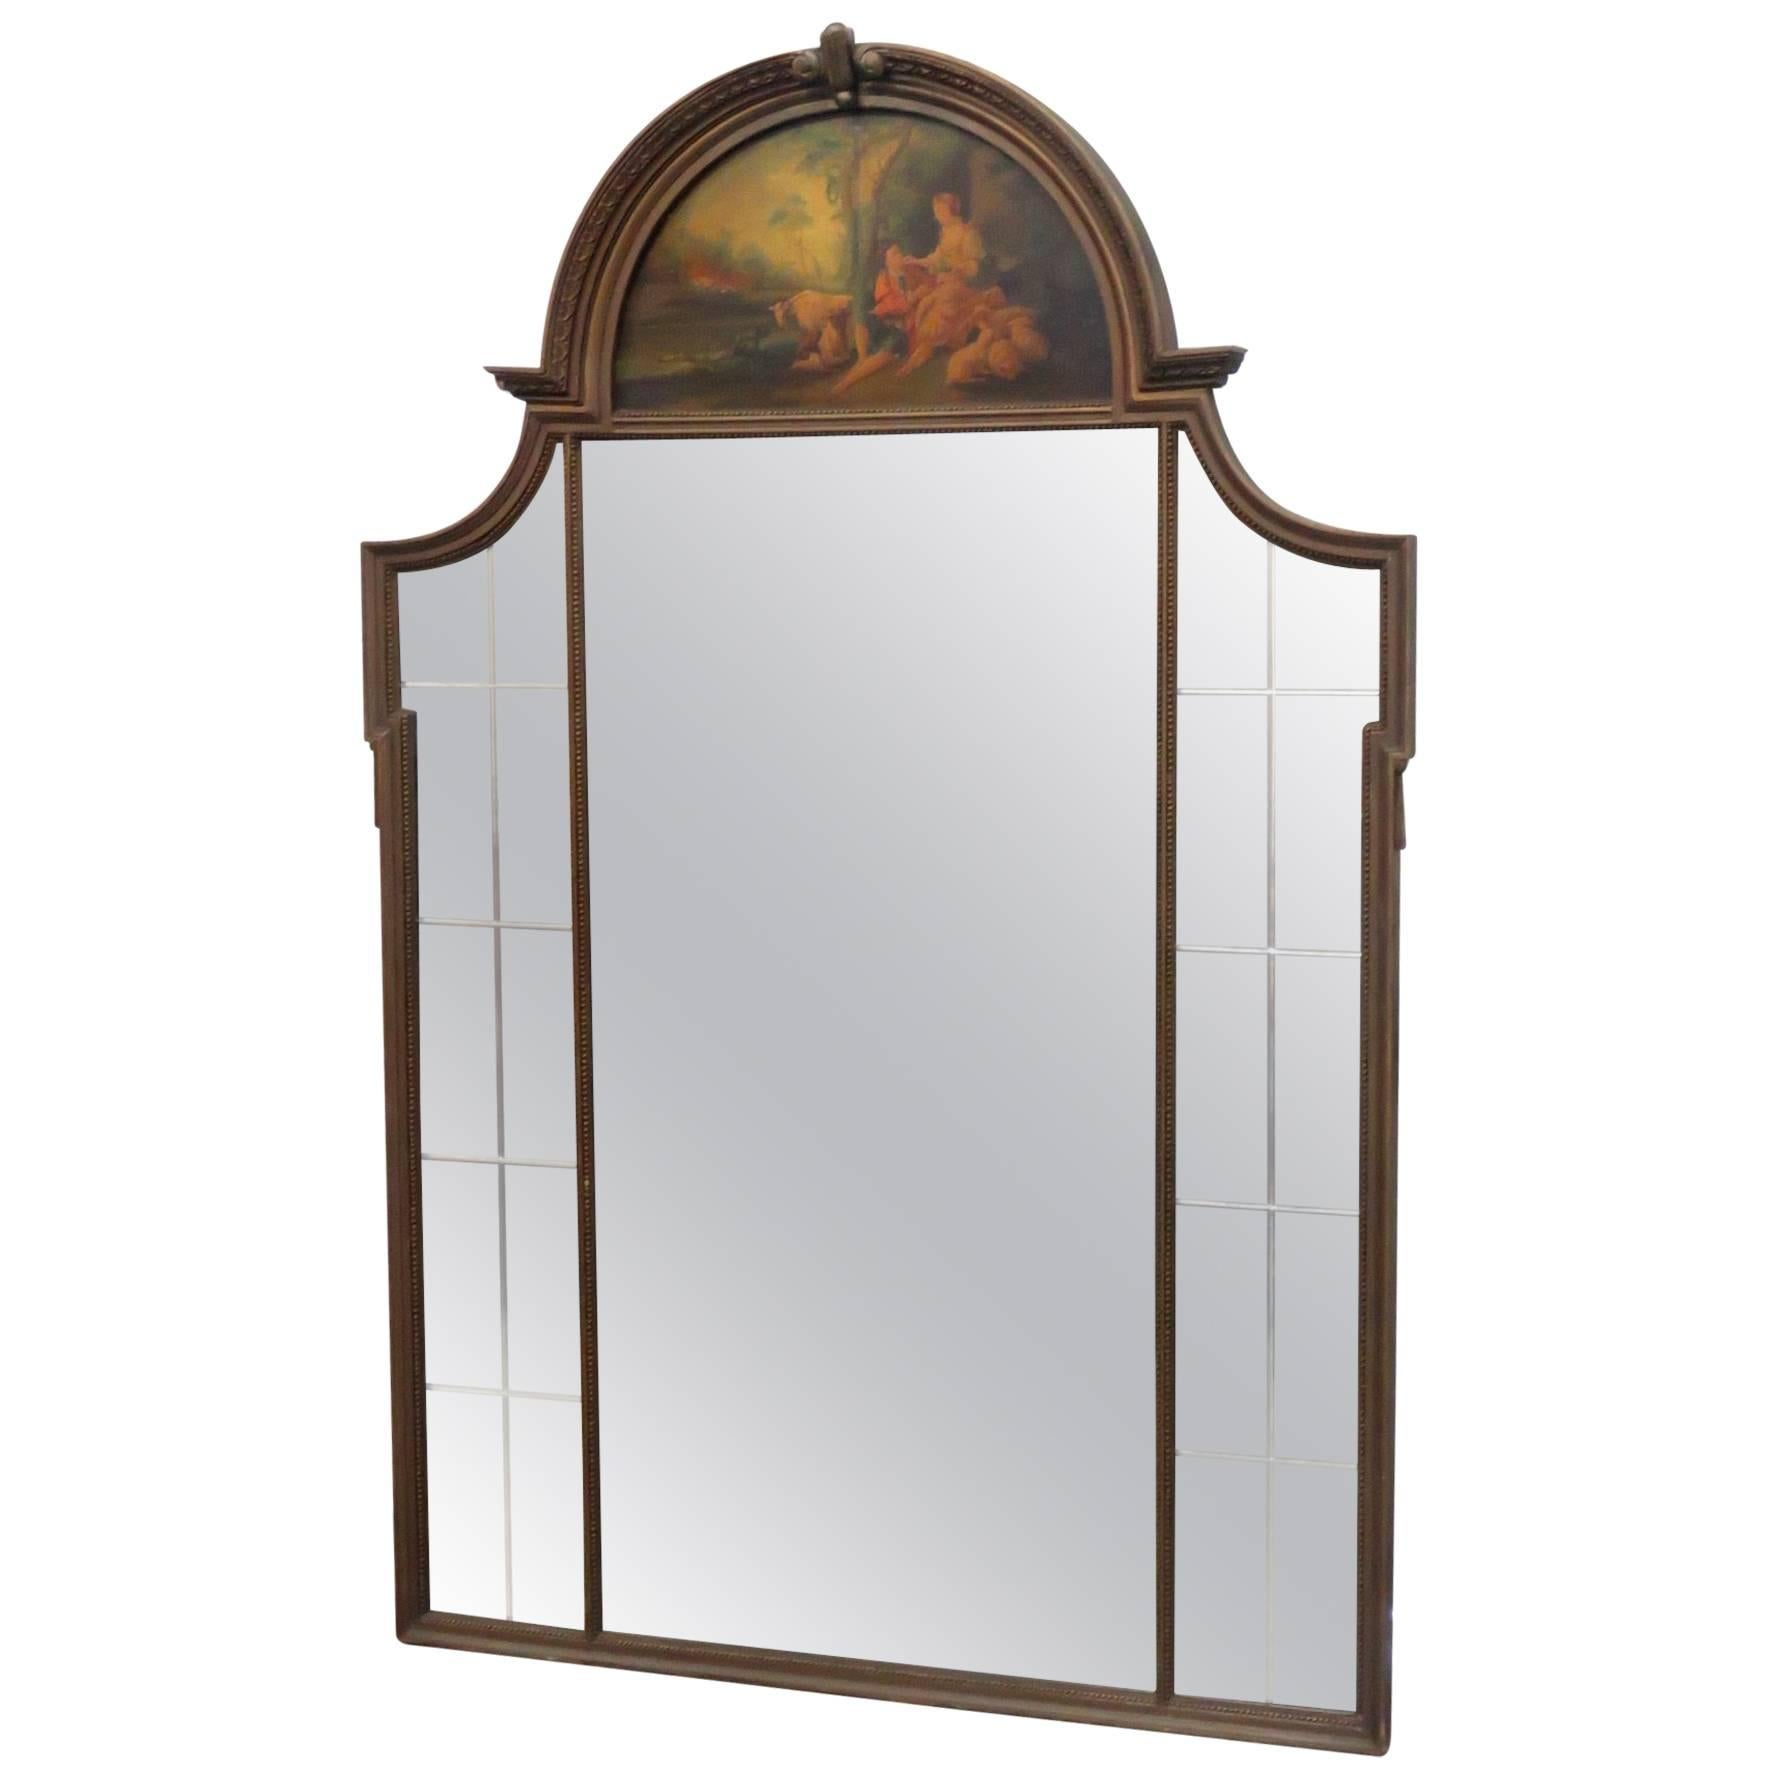 French Louis XV Style Trumeau Mirror with Oil Painting of Pasture Scene